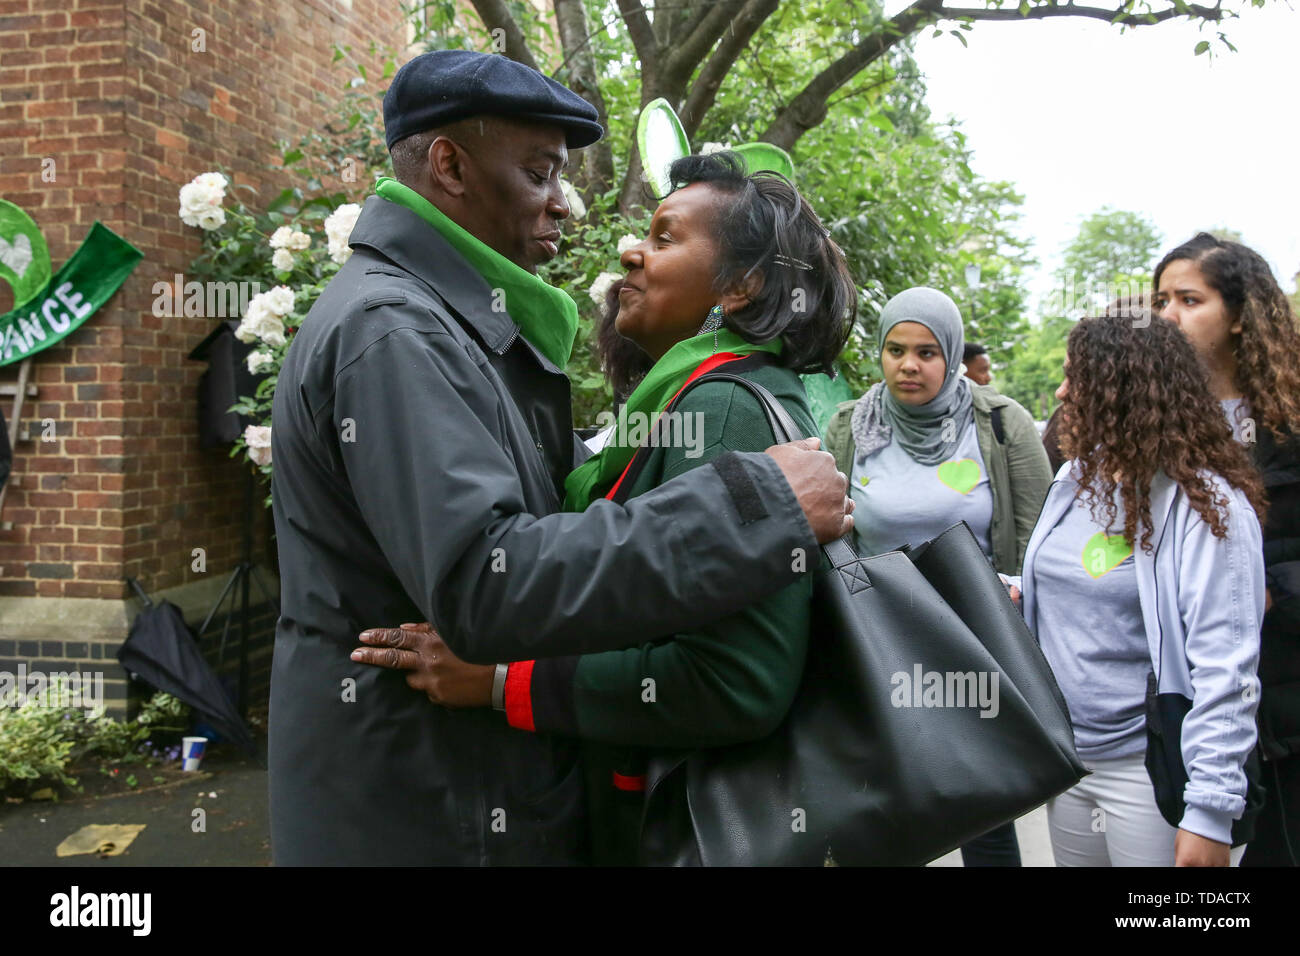 North Kensington, West London. UK 14 Jun 2019 - Survivors, family and friends of the victims arrive at St Helen's Church to commemorate the second anniversary of the Grenfell Tower fire service. On 14 June 2017, just before 1:00Êam a fire broke out in the kitchen of the fourth floor flat at the 24-storey residential tower block in North Kensington, West London, which took the lives of 72 people. More than 70 others were injured and 223 people escaped.  Credit: Dinendra Haria/Alamy Live News - Stock Image